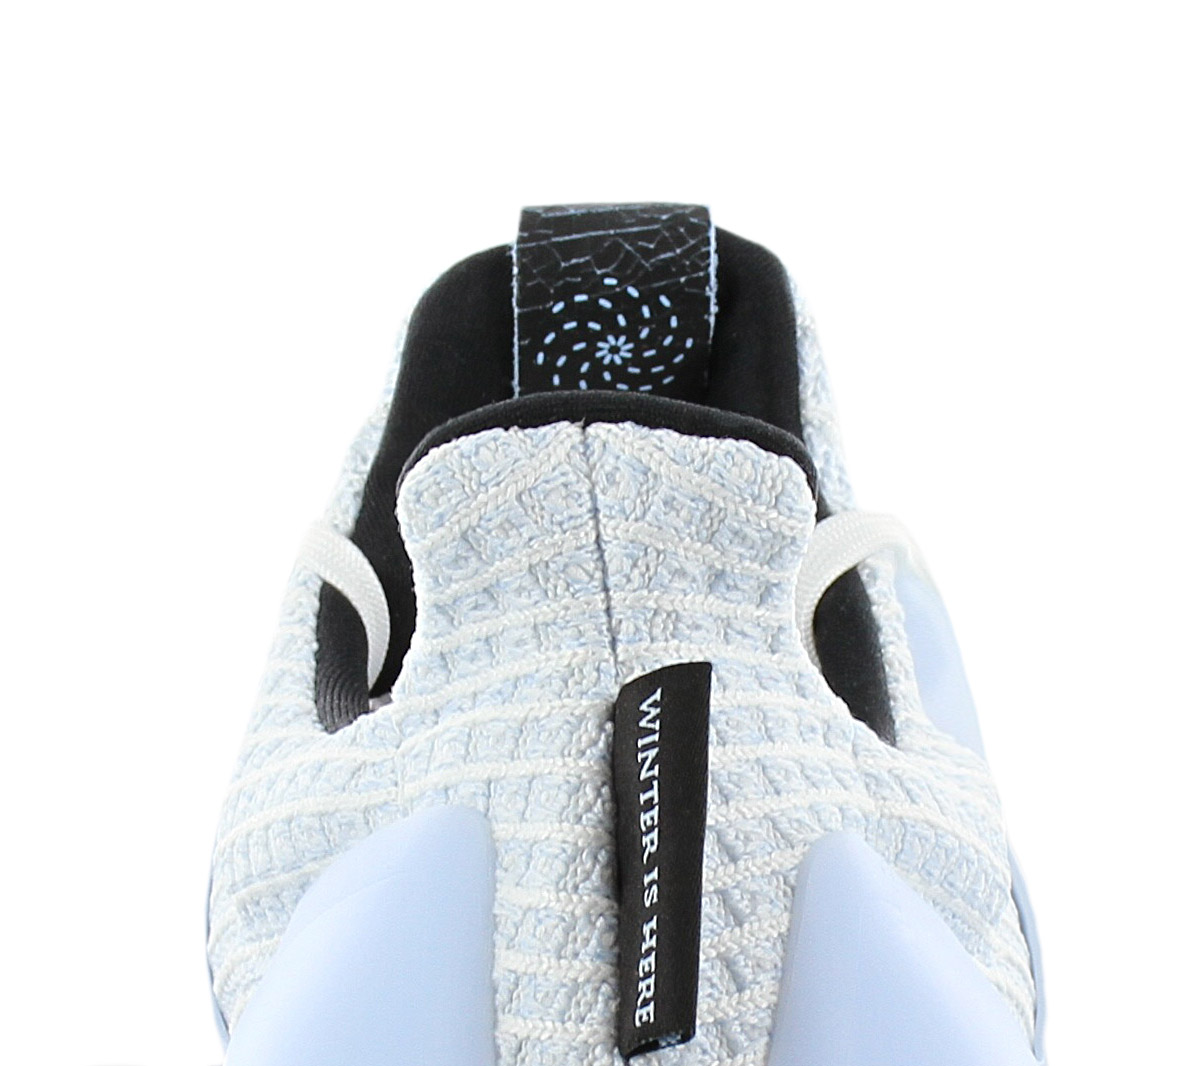 356ac04a3a3f1 Adidas Ultra Boost x Got - Game of Thrones - White Walkers - Ee3708 ...